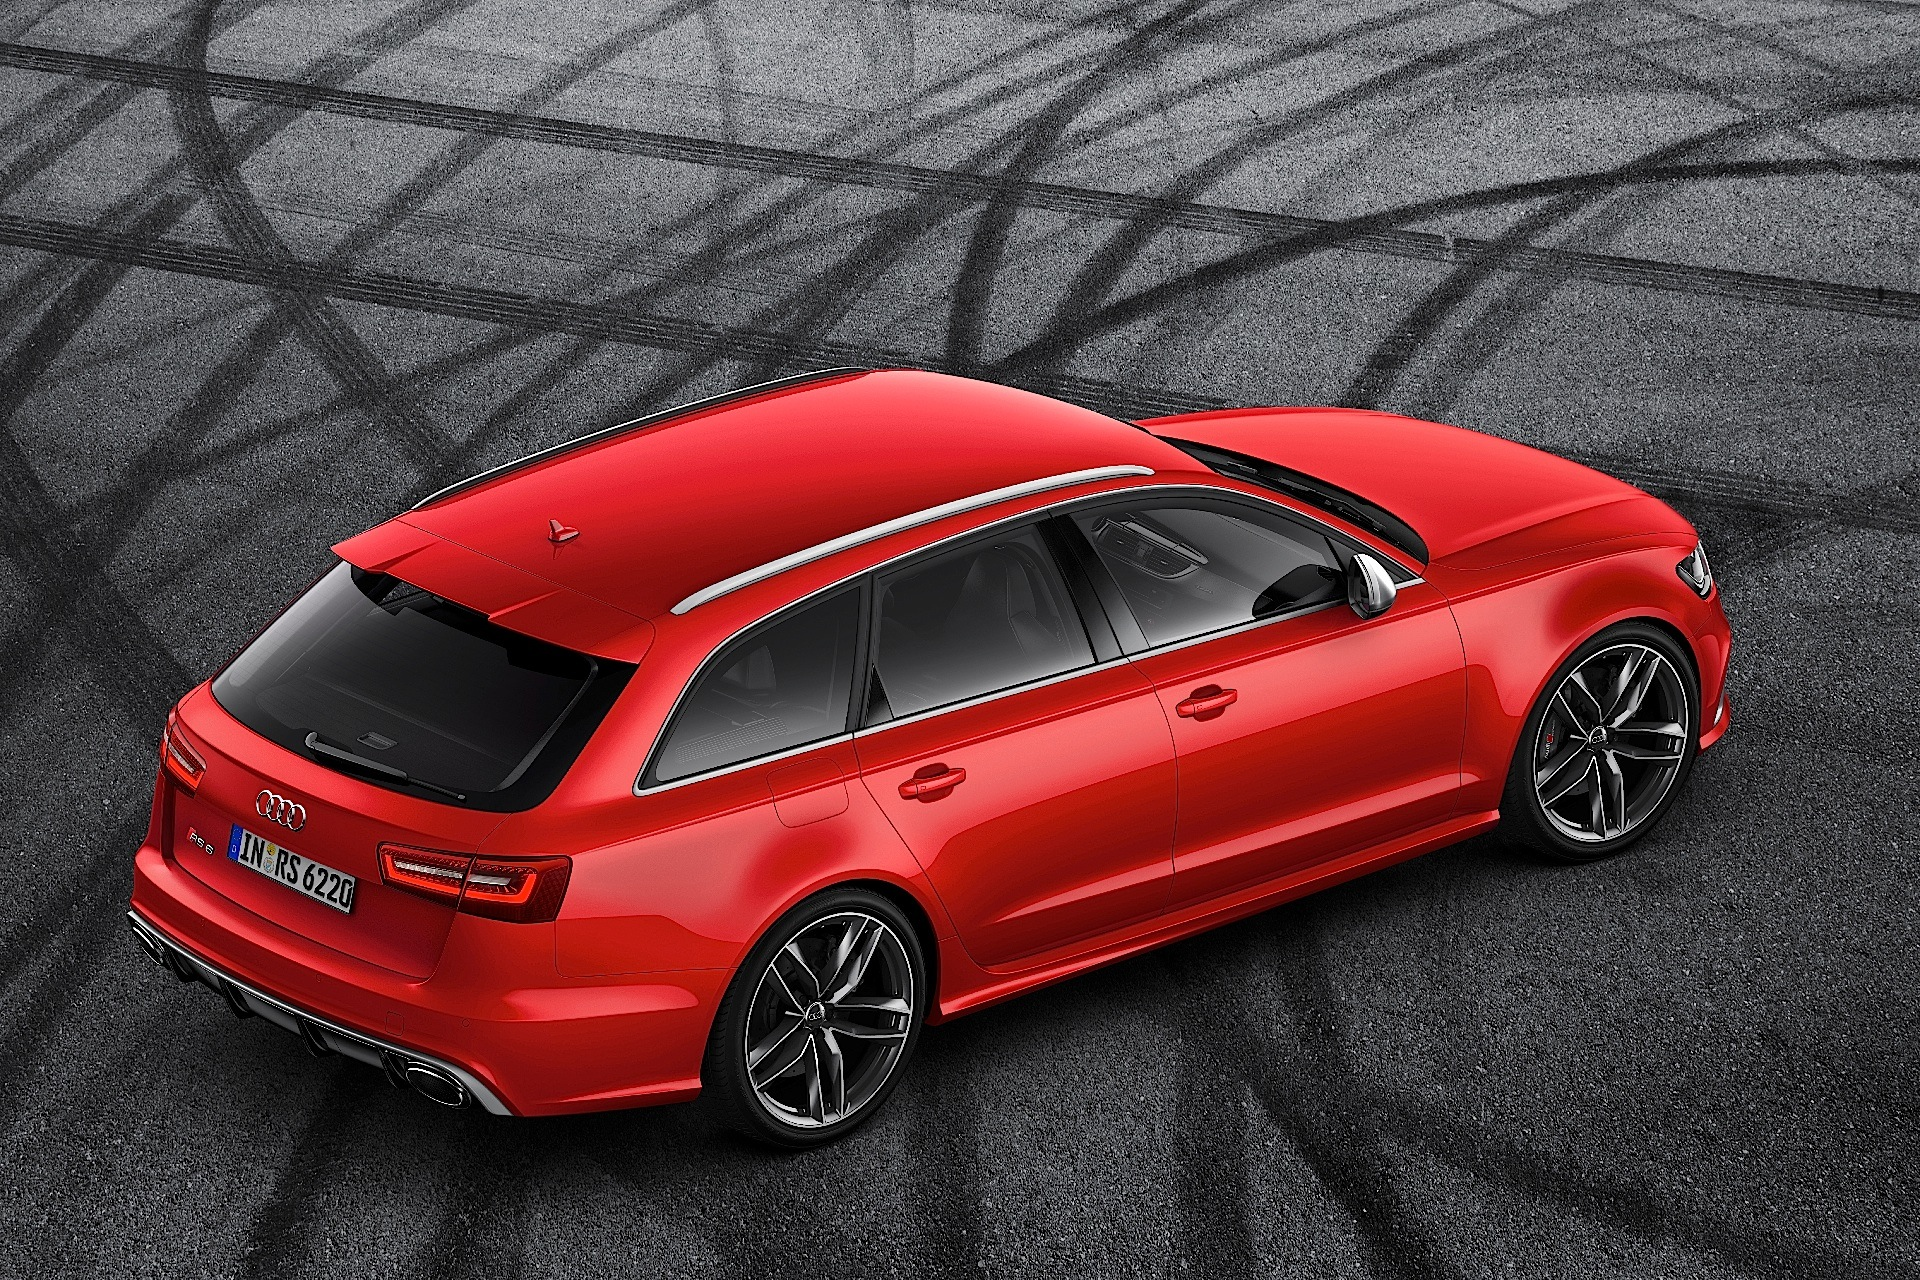 audi rs6 avant specs 2013 2014 2015 2016 2017 2018 autoevolution. Black Bedroom Furniture Sets. Home Design Ideas